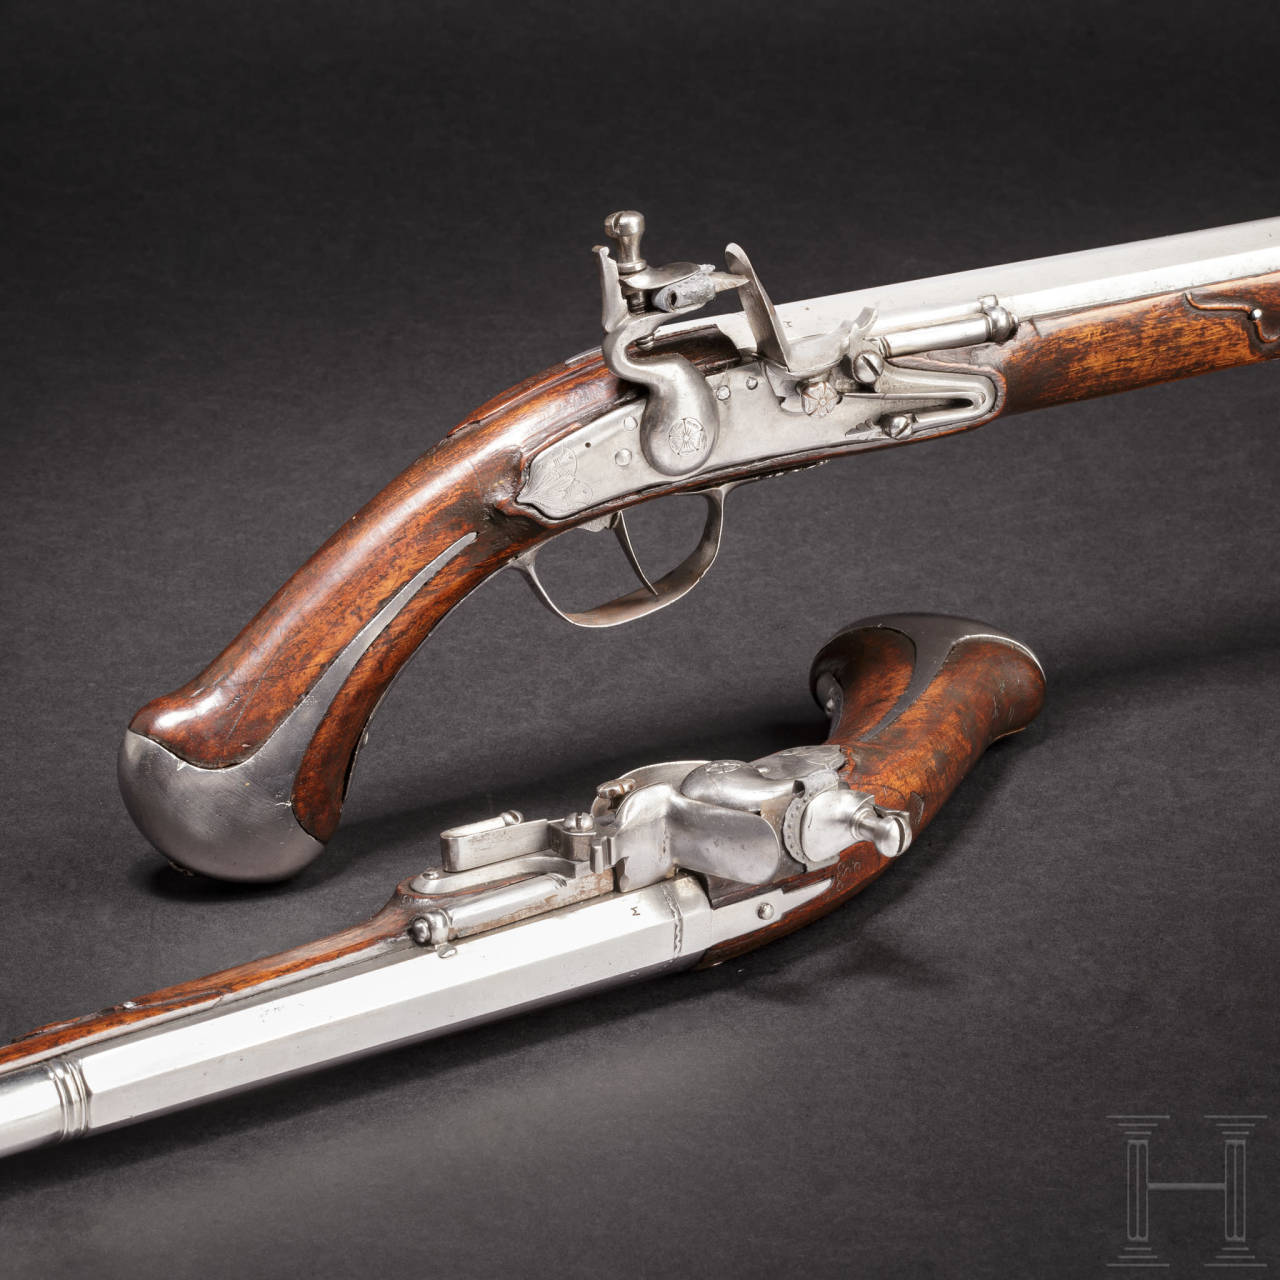 A rare pair of flintlock holster pistols made for superimposed loads, from the armoury of the Princes of Salm-Reifferscheidt-Dyck, northern German or Dutch, circa 1660